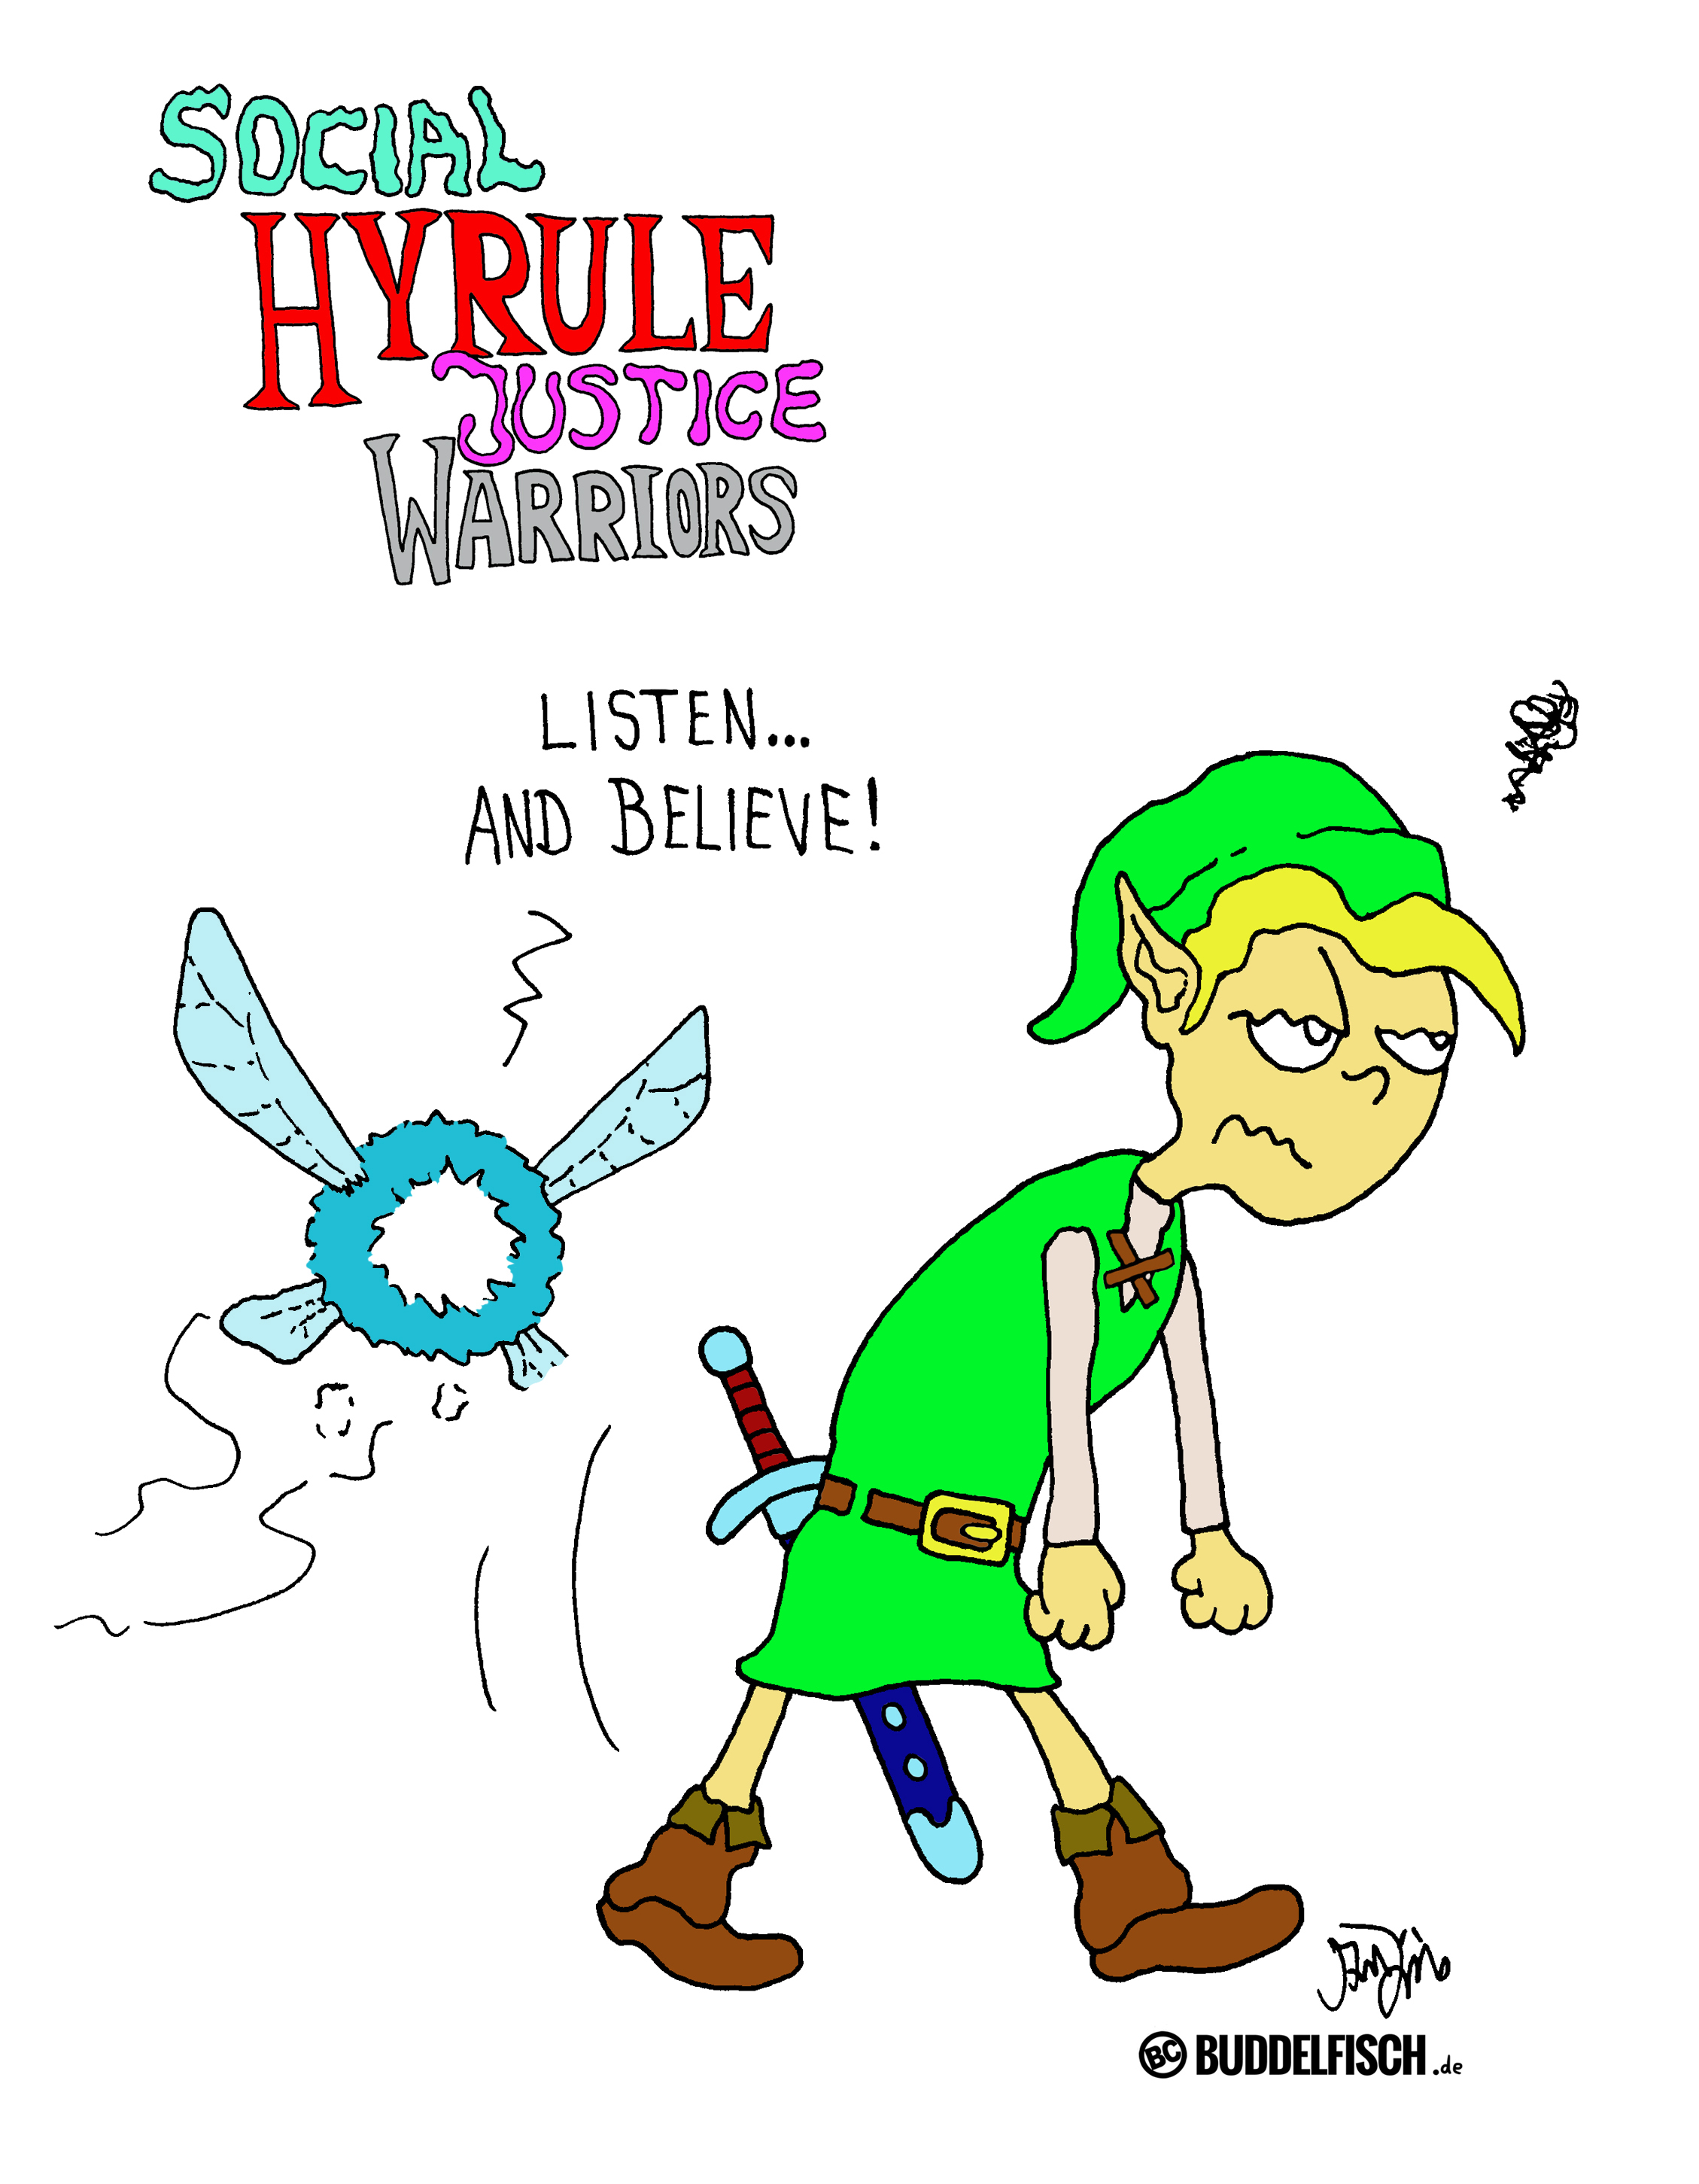 Webcomic - Social Hyrule Justice Warriors